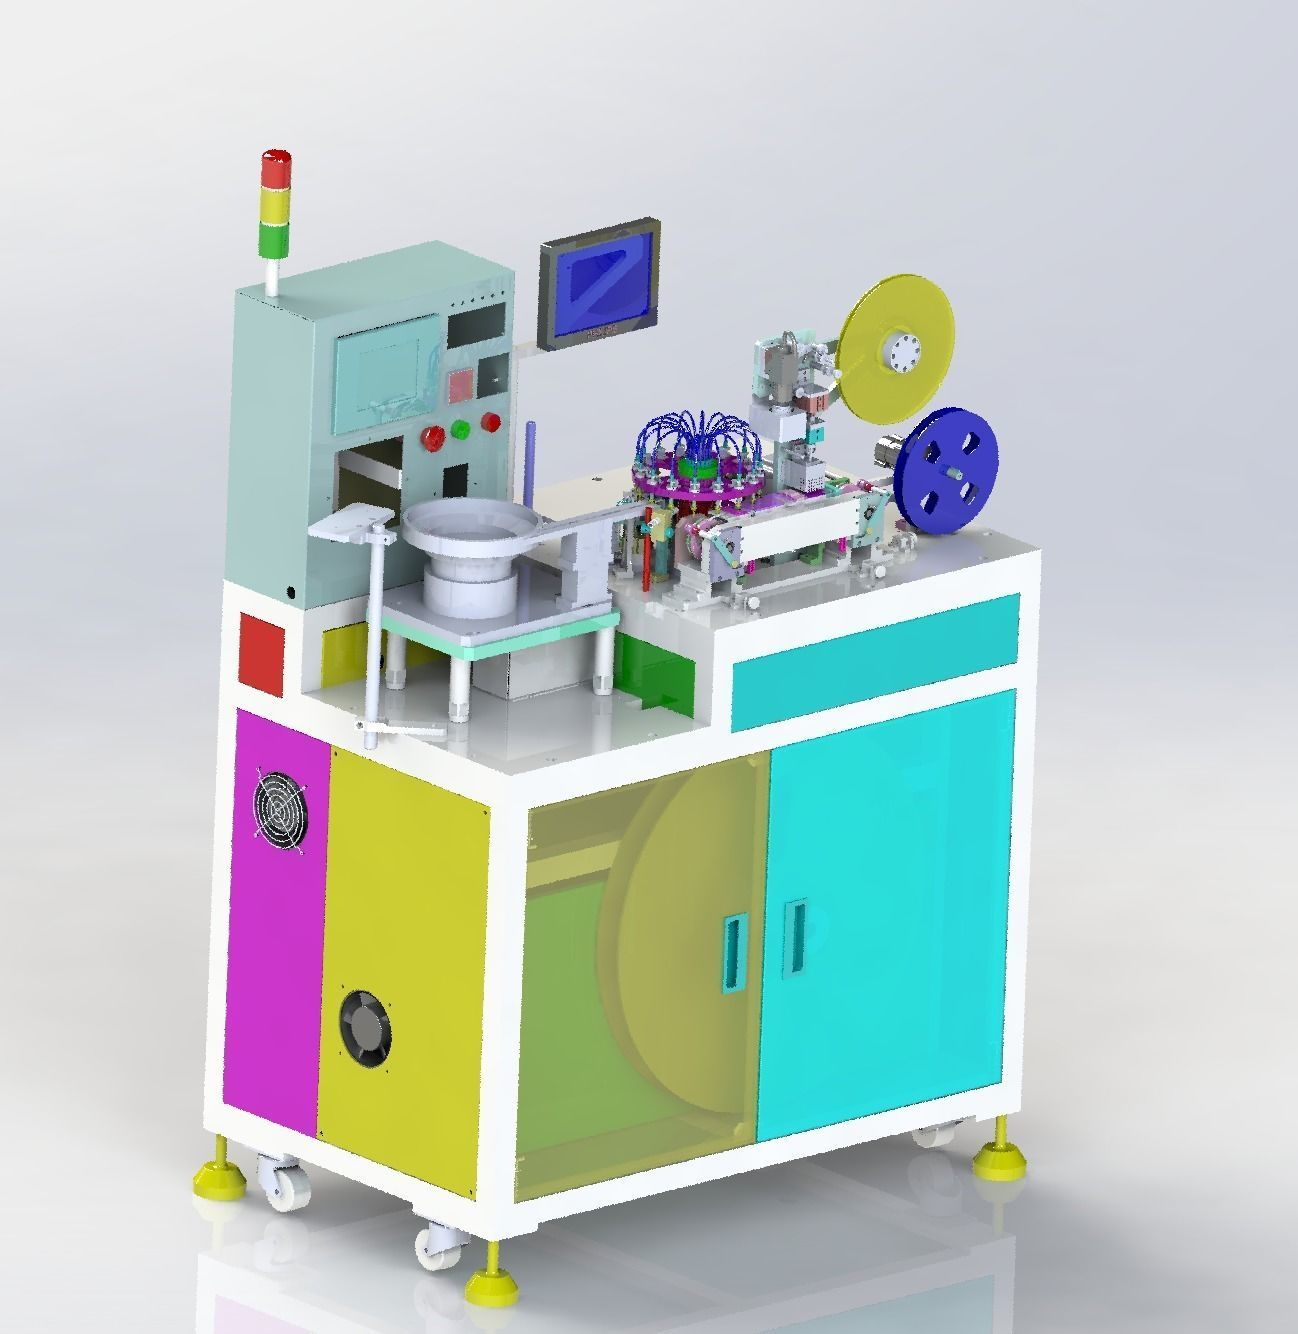 Small product packaging machine